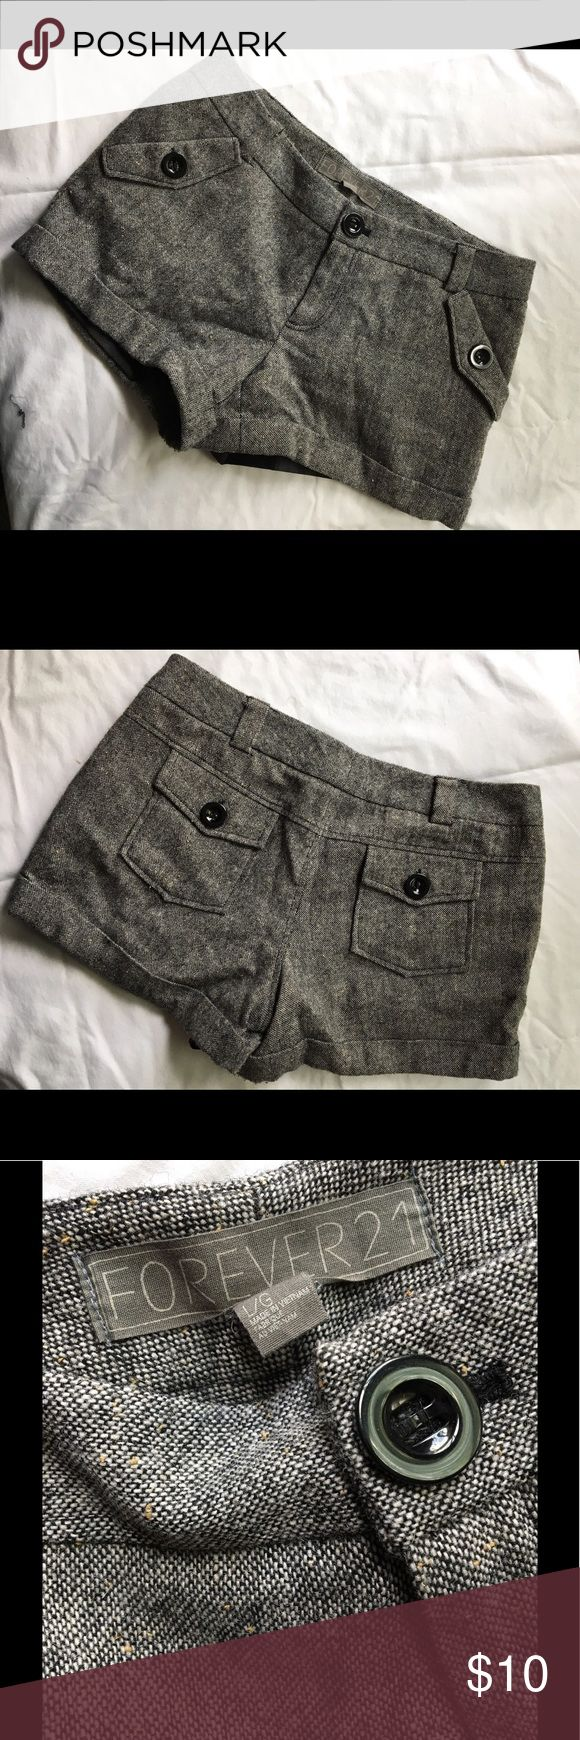 Tweed shorts Black and white tweed shorts. Forever 21 Shorts